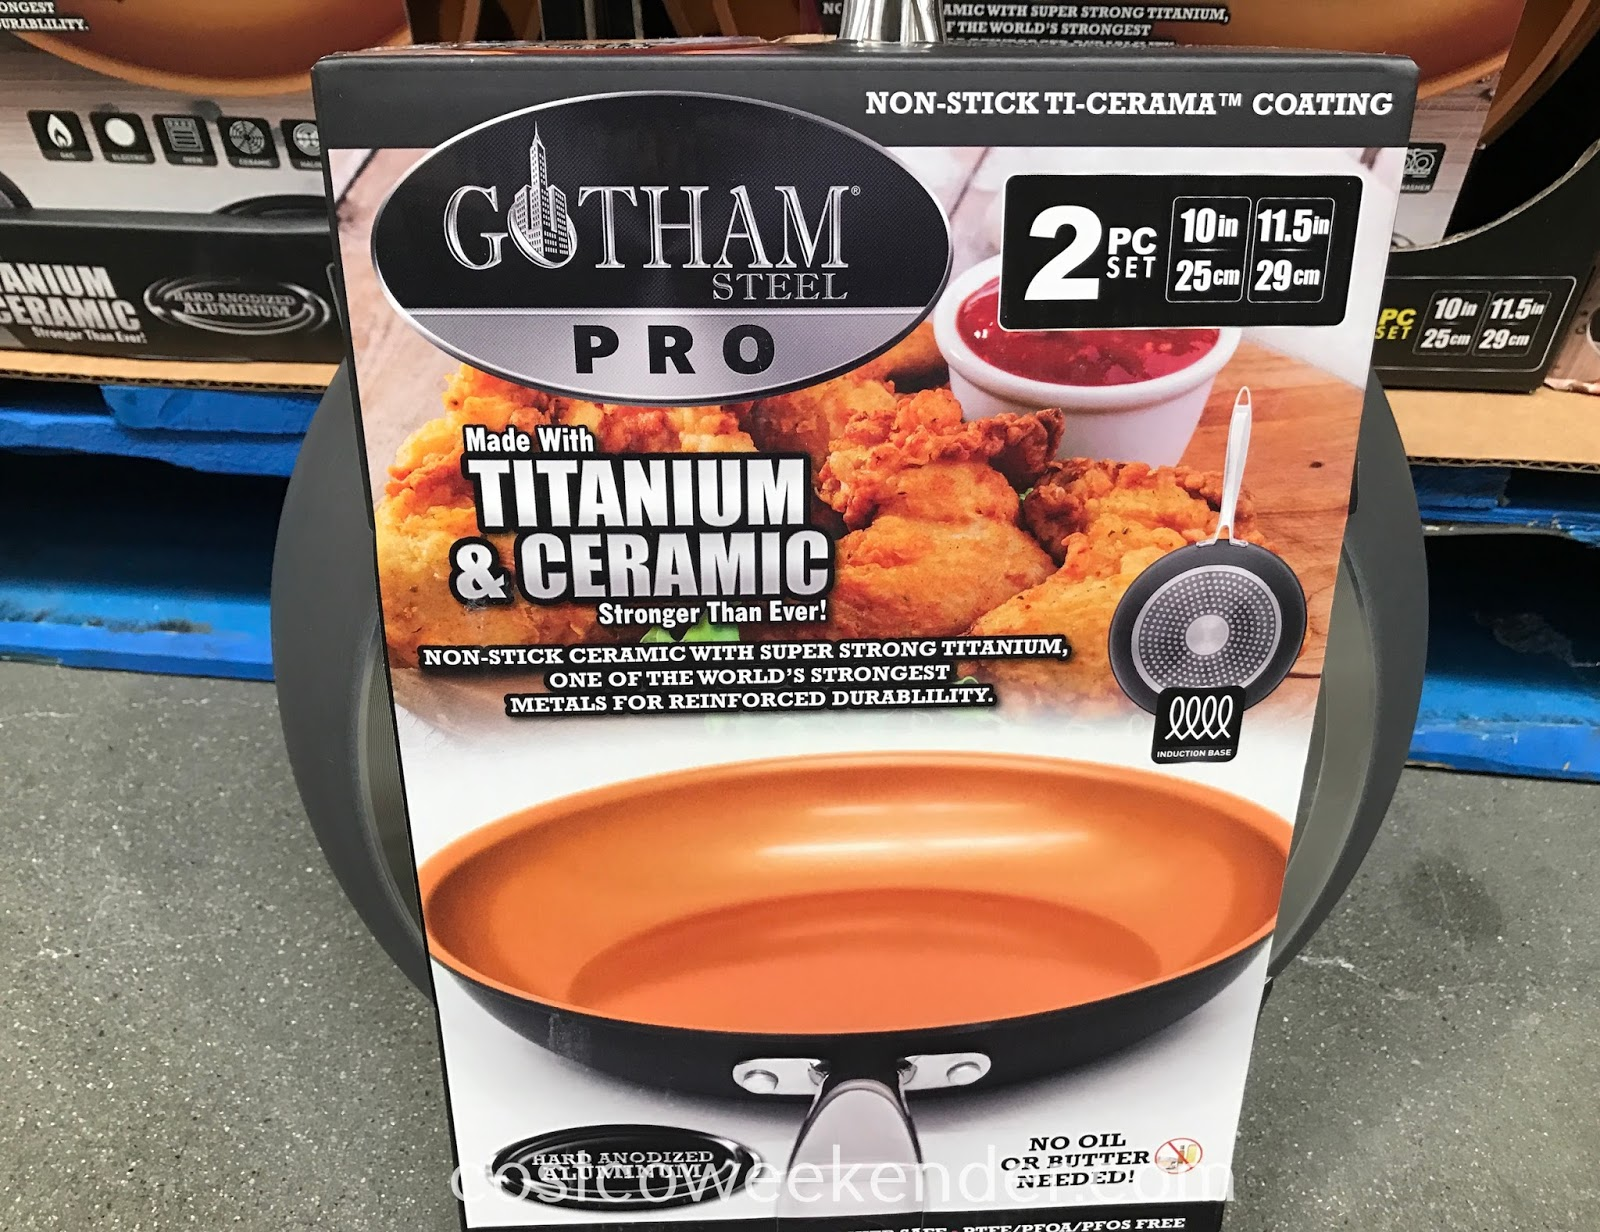 Costco 1147577 - Gotham Steel Pro Ceramic Non-Stick Frying Pans (2 piece set): great for any home chef